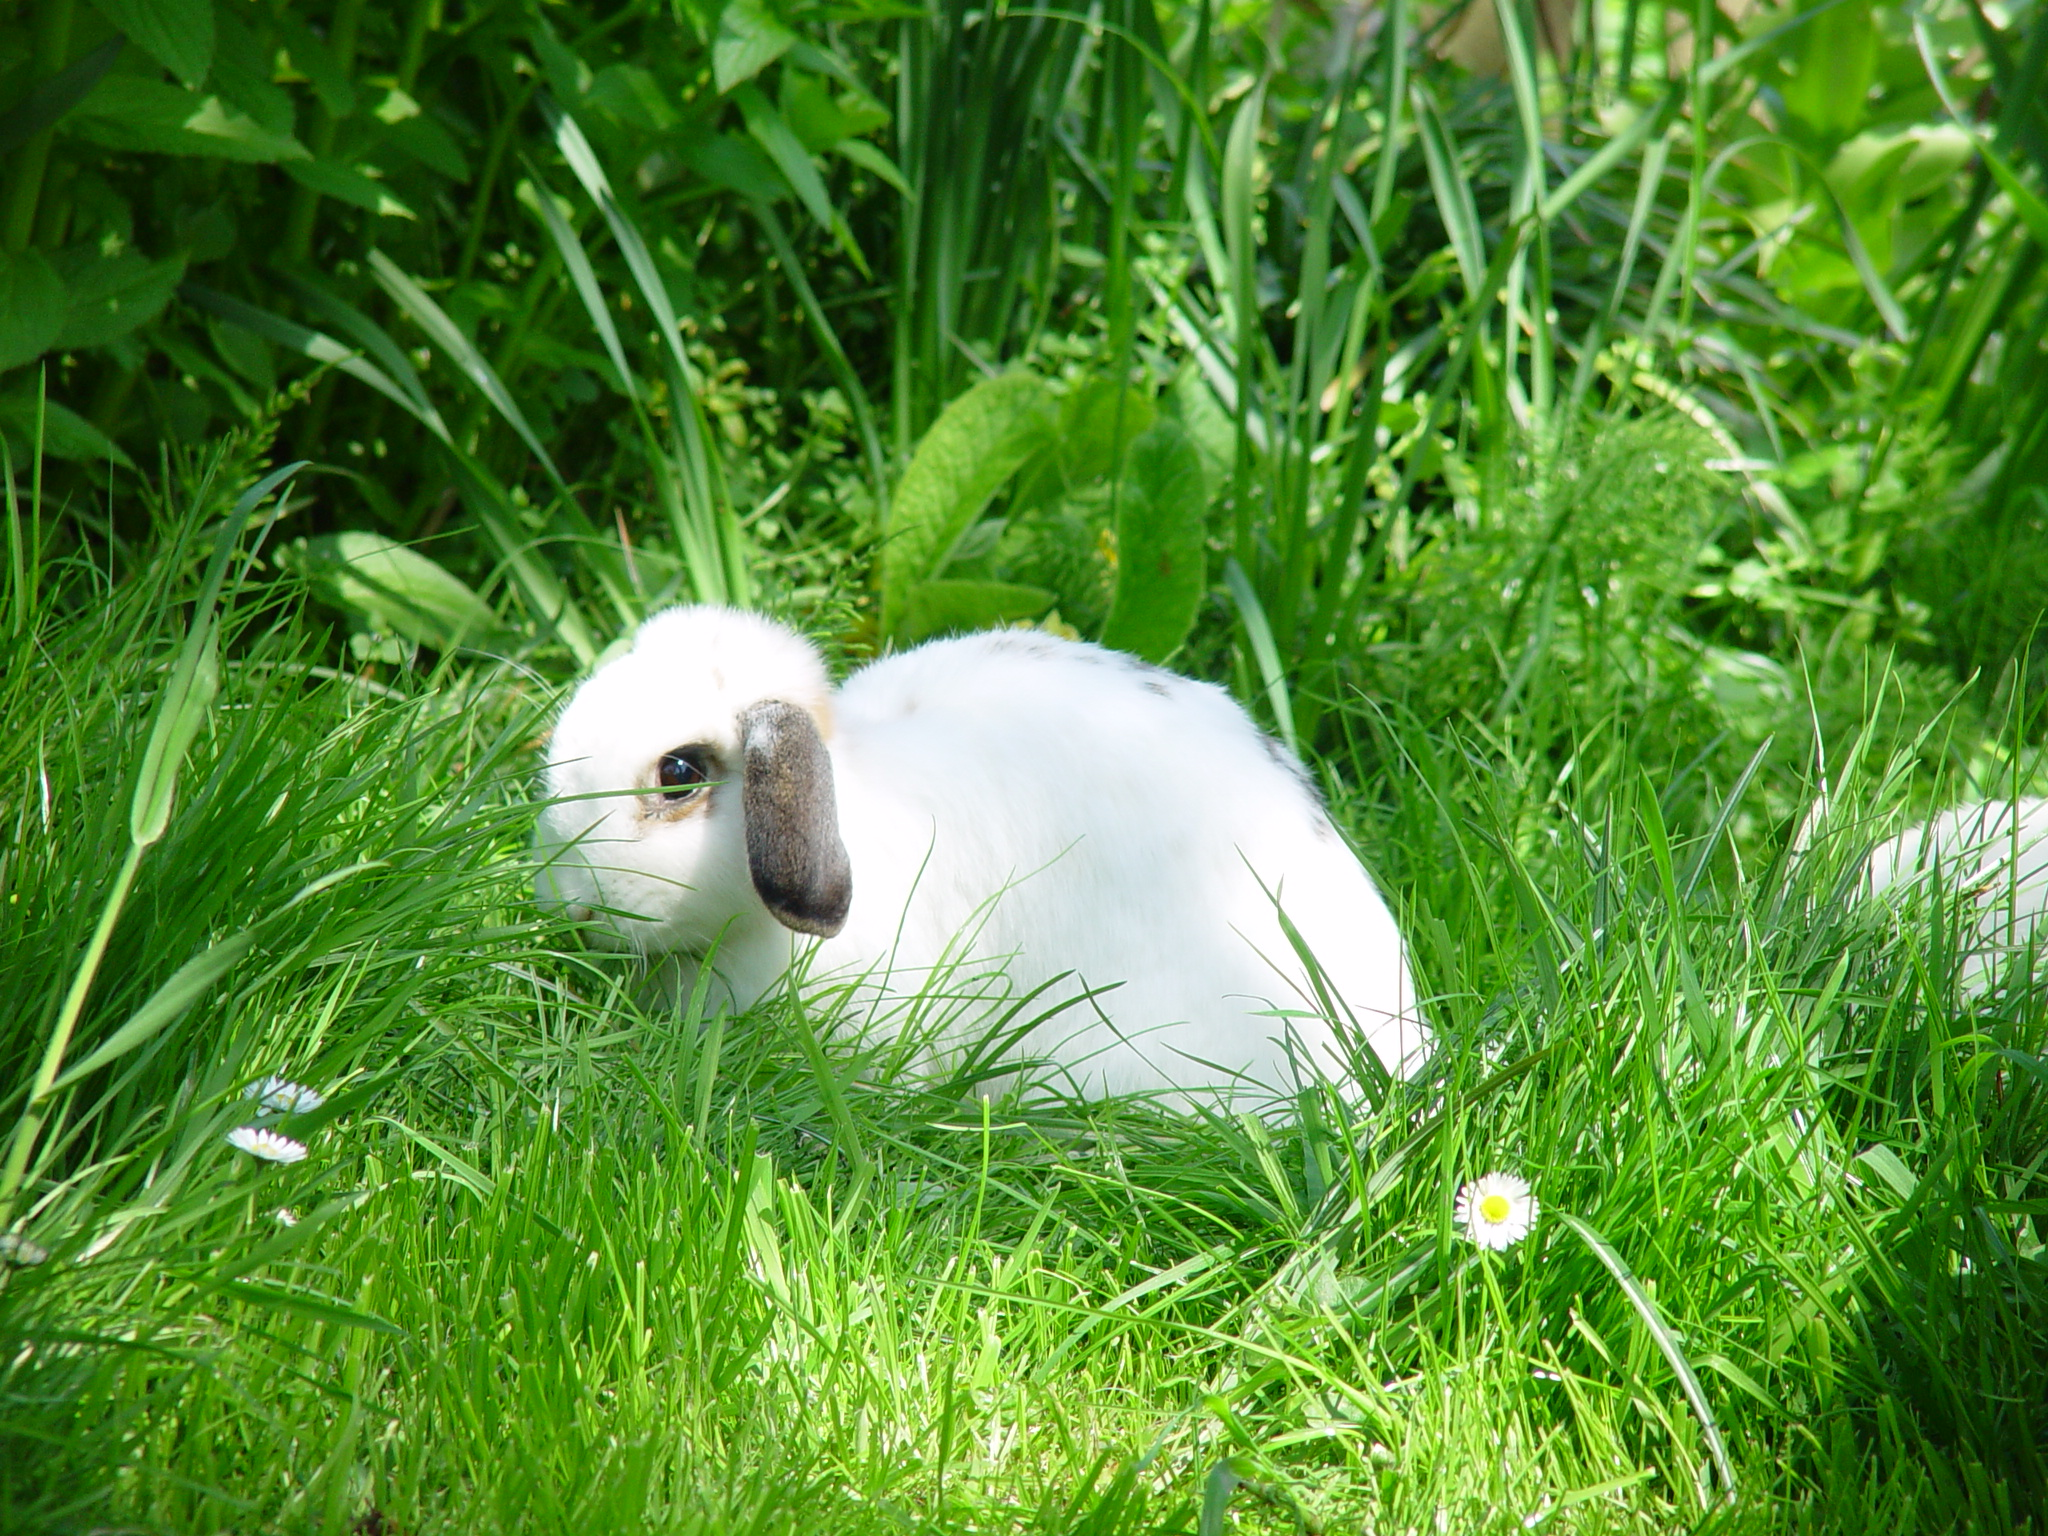 Adventurous Bunnies Explore the Lawn and Tall Grasses 2